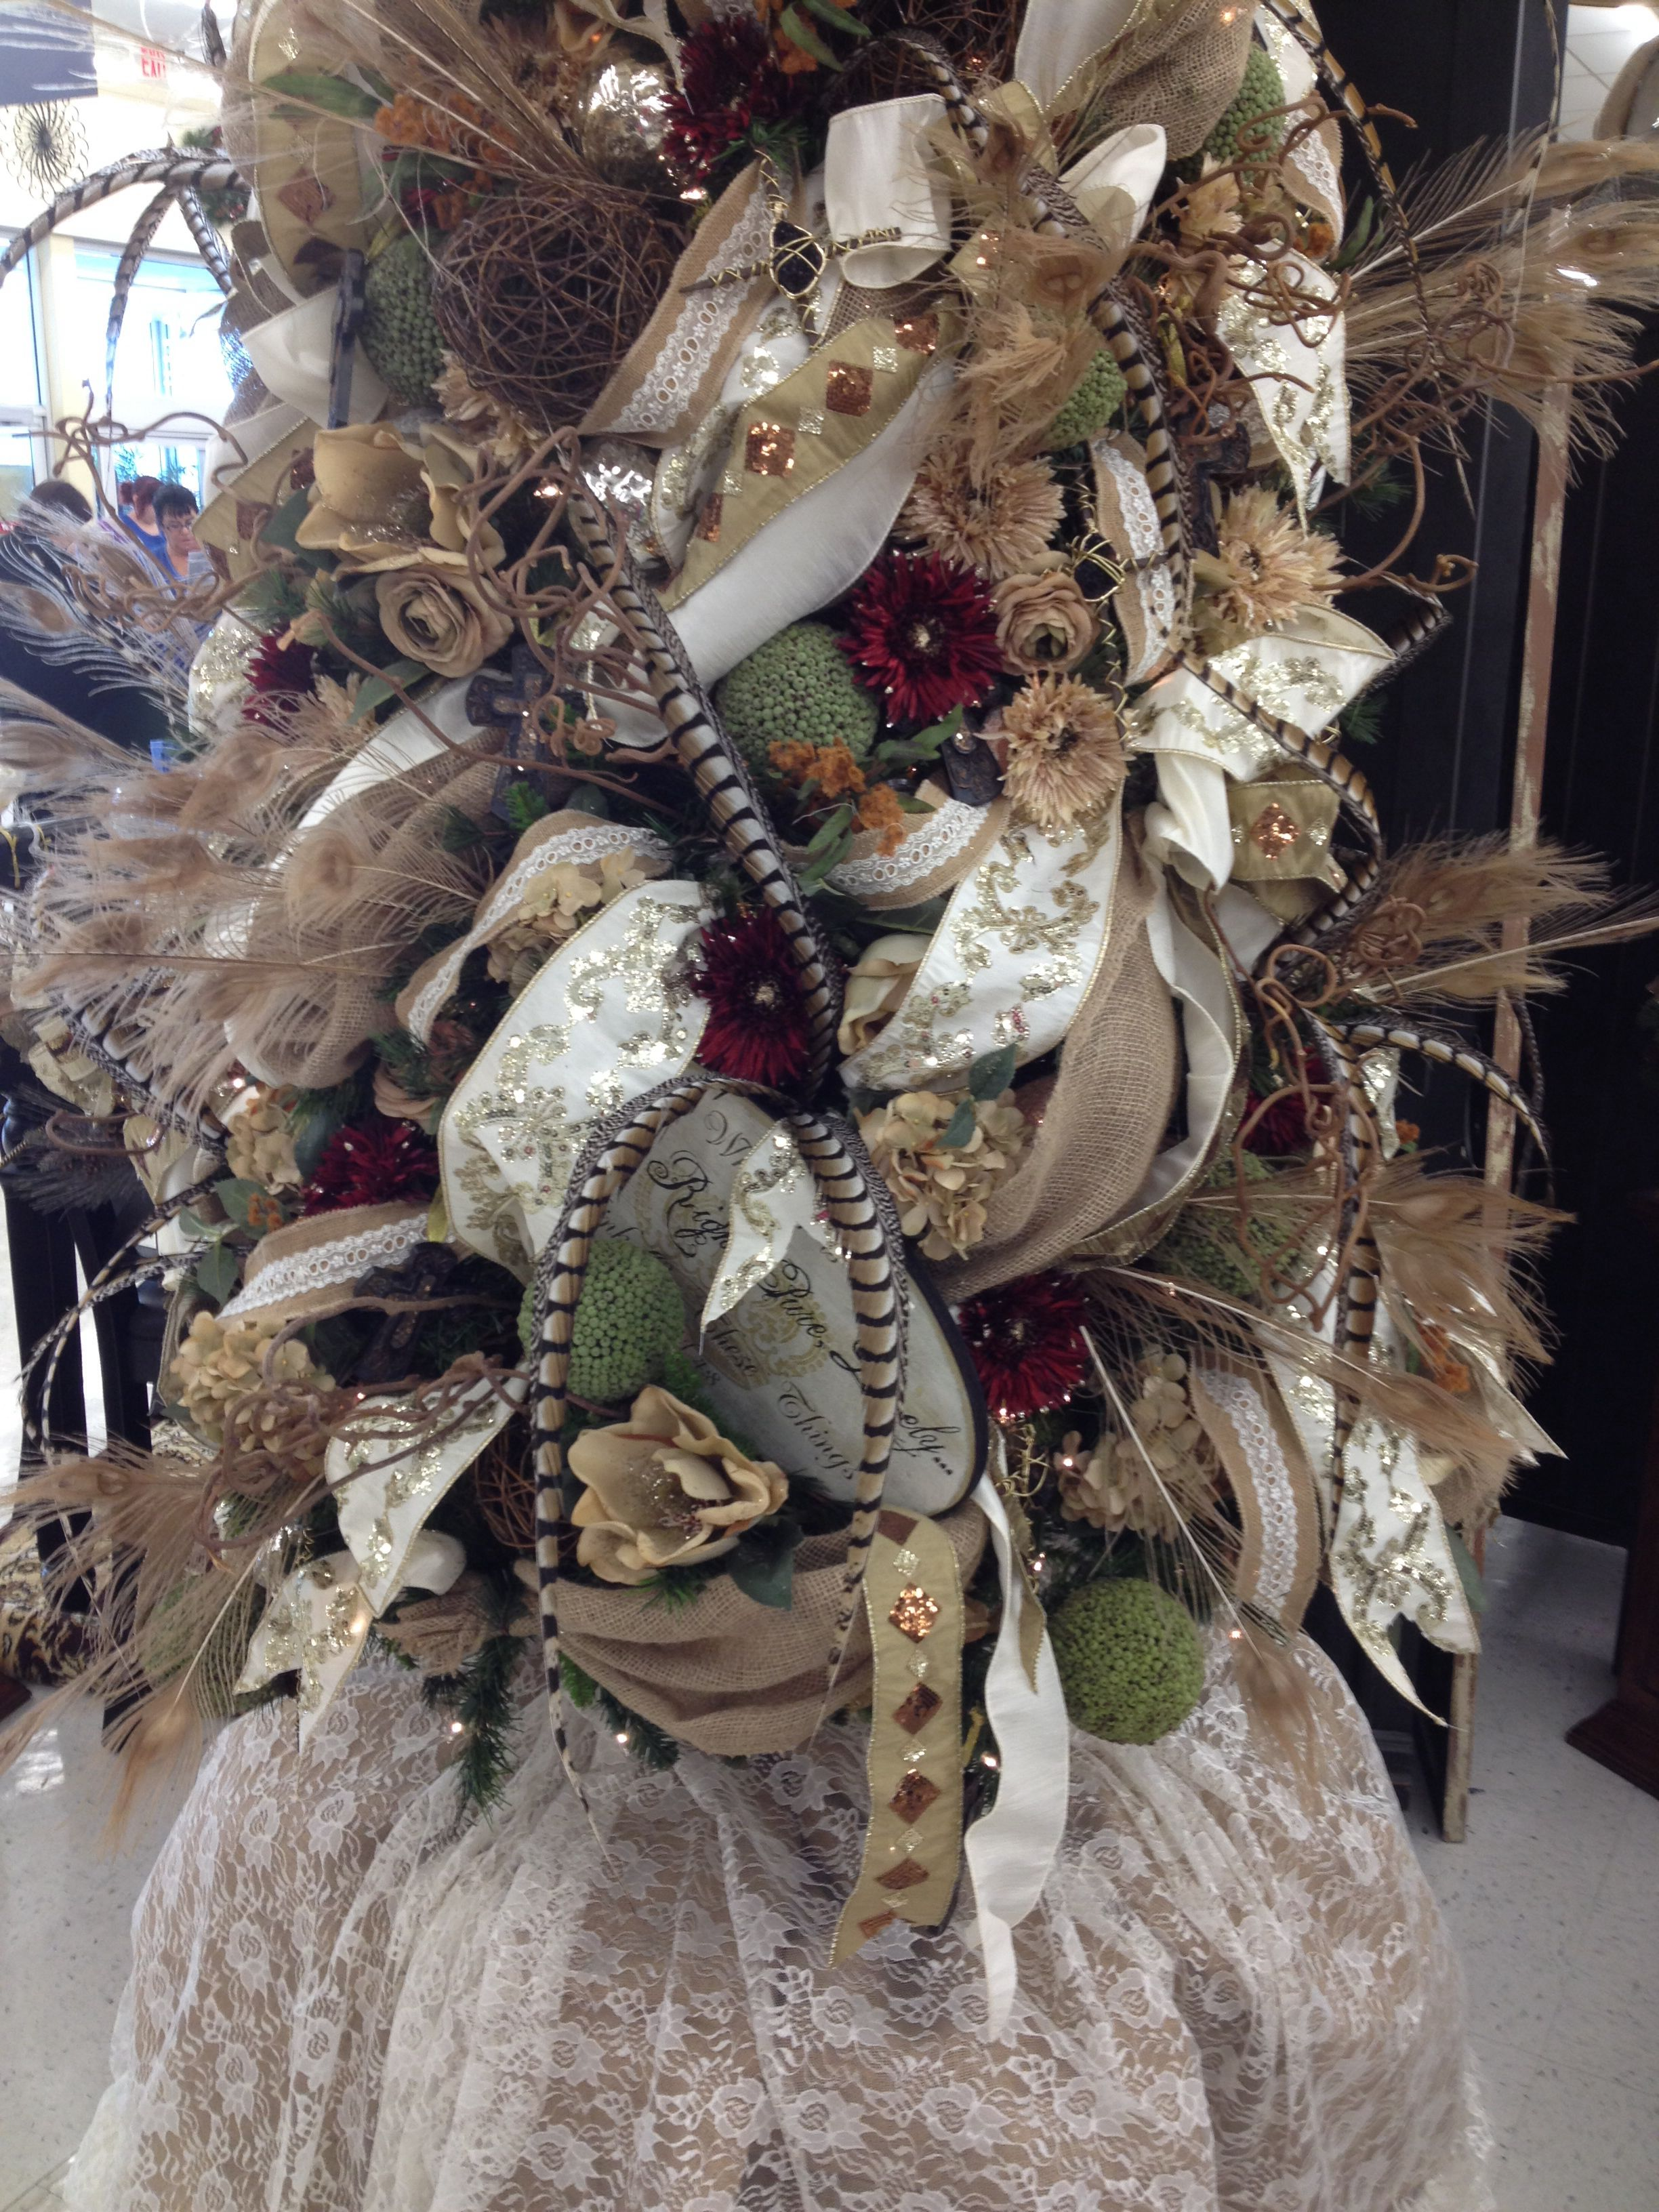 Beautiful Christmas tree decorations.  Feathers, burlap, lace, oh my!